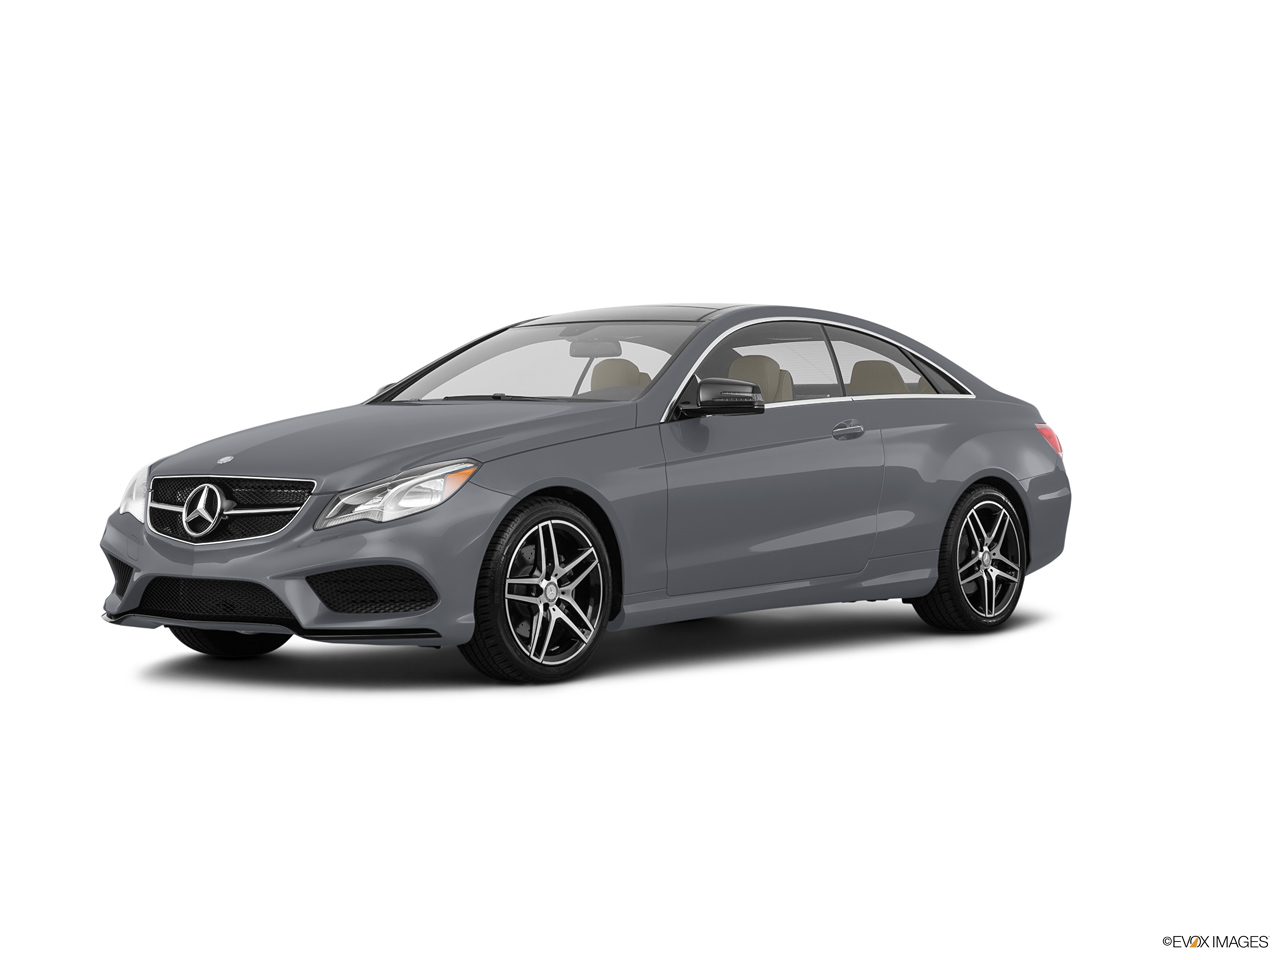 Car pictures list for mercedes benz e class coupe 2017 e for Mercedes benz coupes list